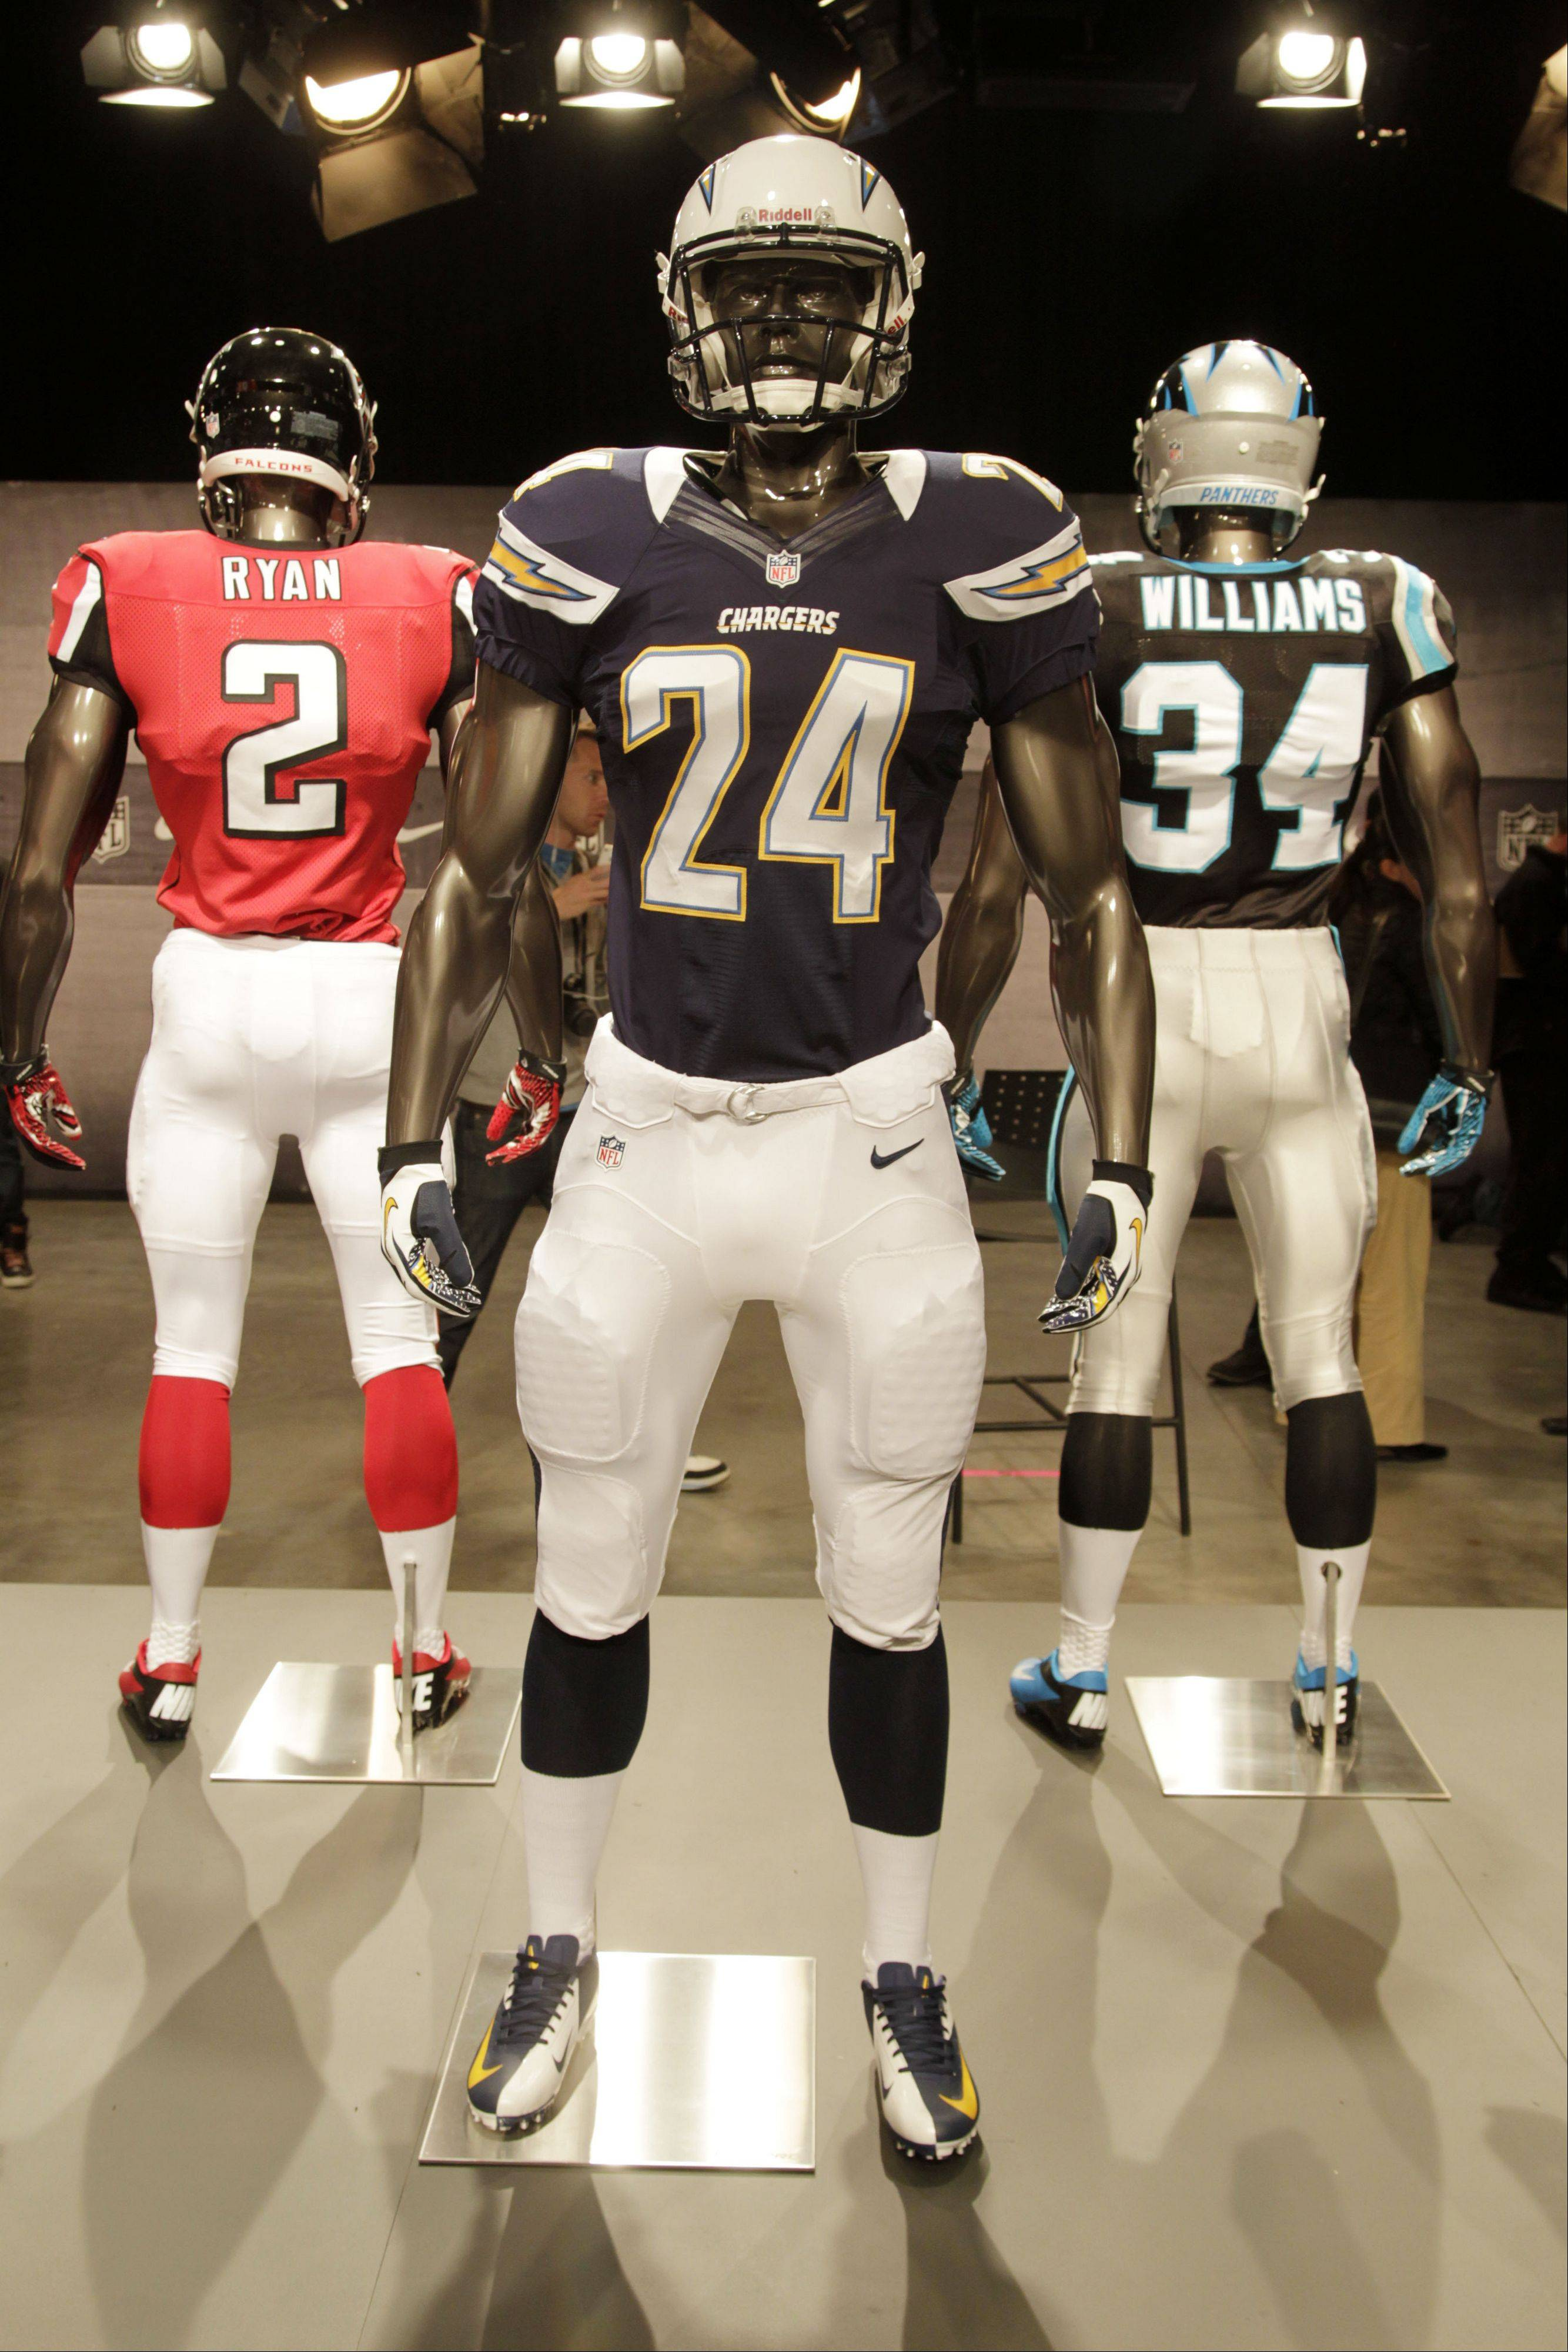 The new San Diego Chargers uniform is displayed on a mannequin in New York, Tuesday, April 3, 2012. NFL has unveiled its new sleek uniforms designed by Nike. While most of the new uniforms are not very different visually, they all are made with new technology that make them lighter, dryer and more comfortable.